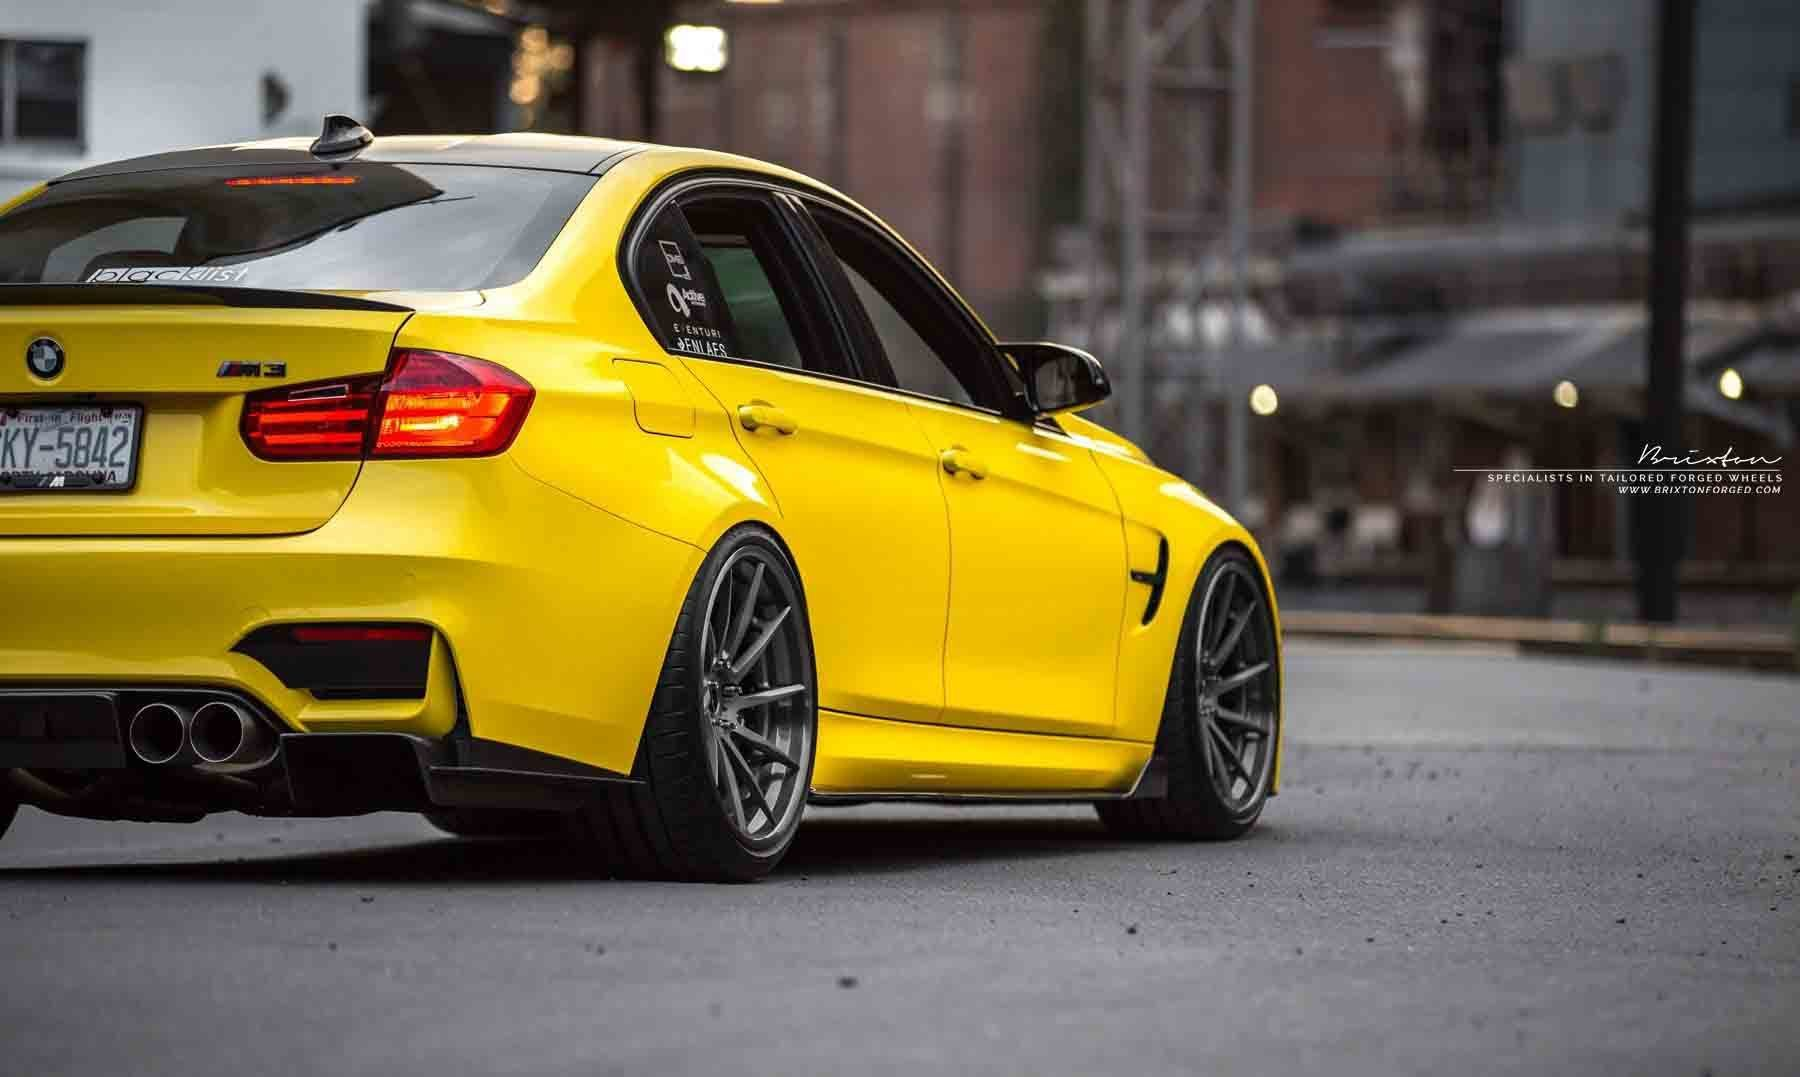 images-products-1-2810-232975098-brixton-forged-wheels-r10d-targa-bmw-f80-m3-yellow-gmp-performance-forged-wheels-smoke-black-8-1.jpg